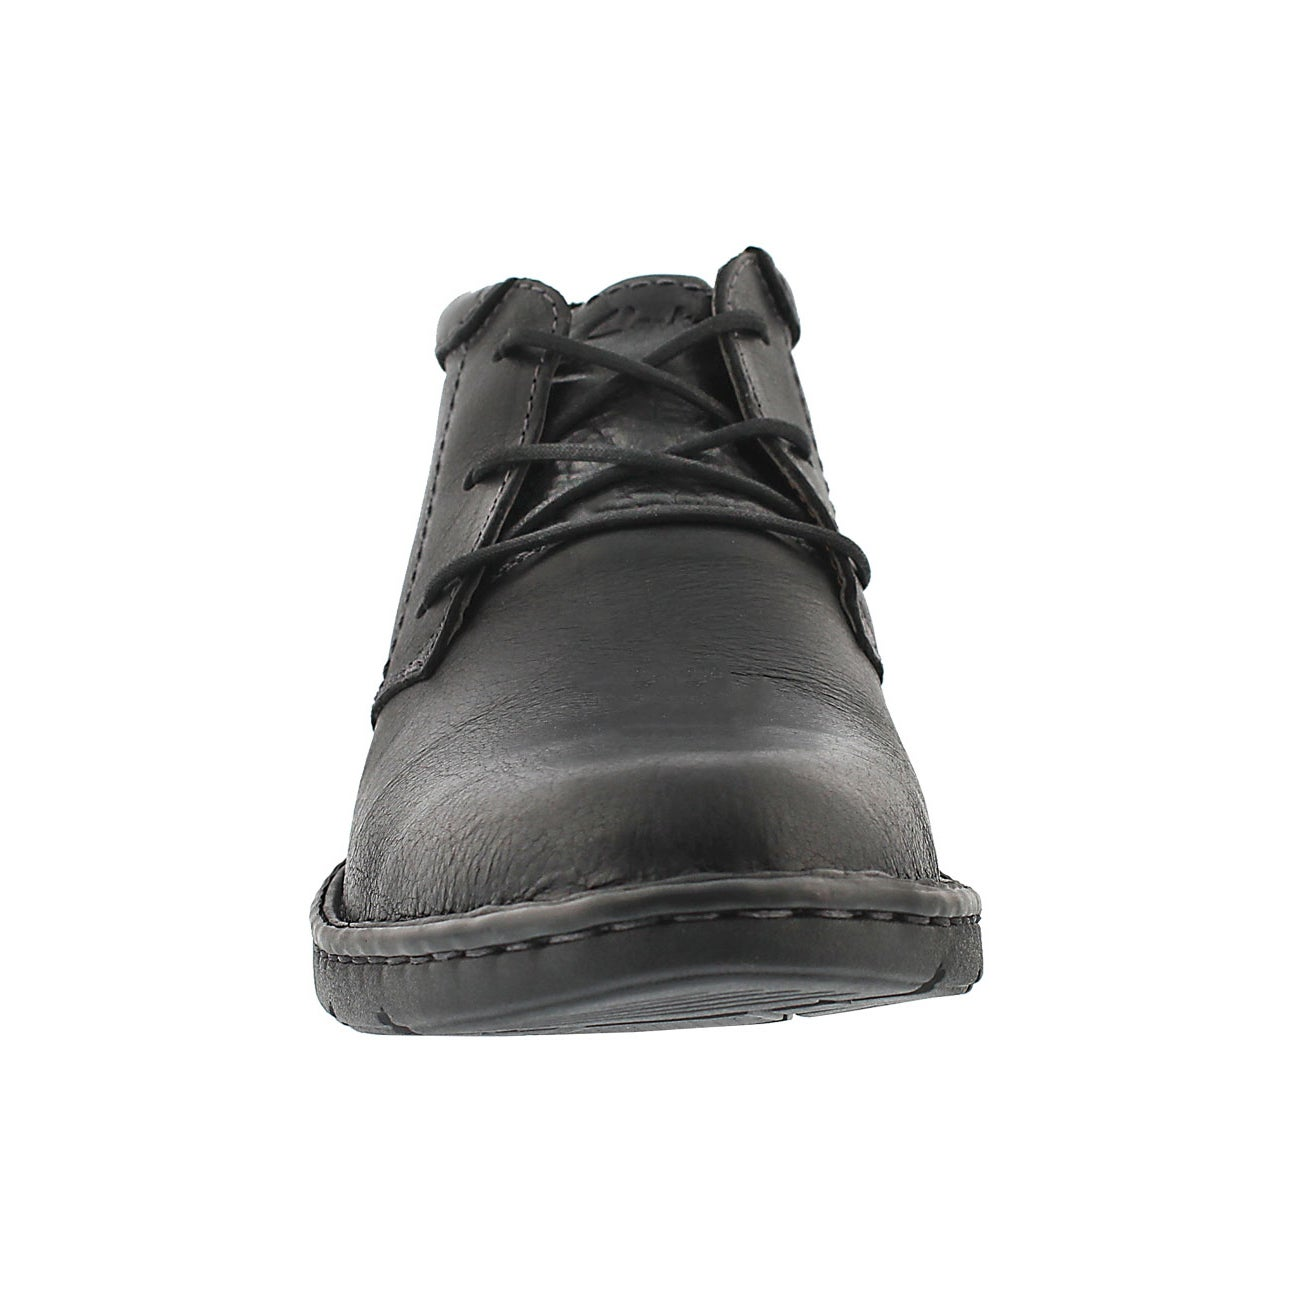 Mns Stratton Limit blk ankle boot - wide